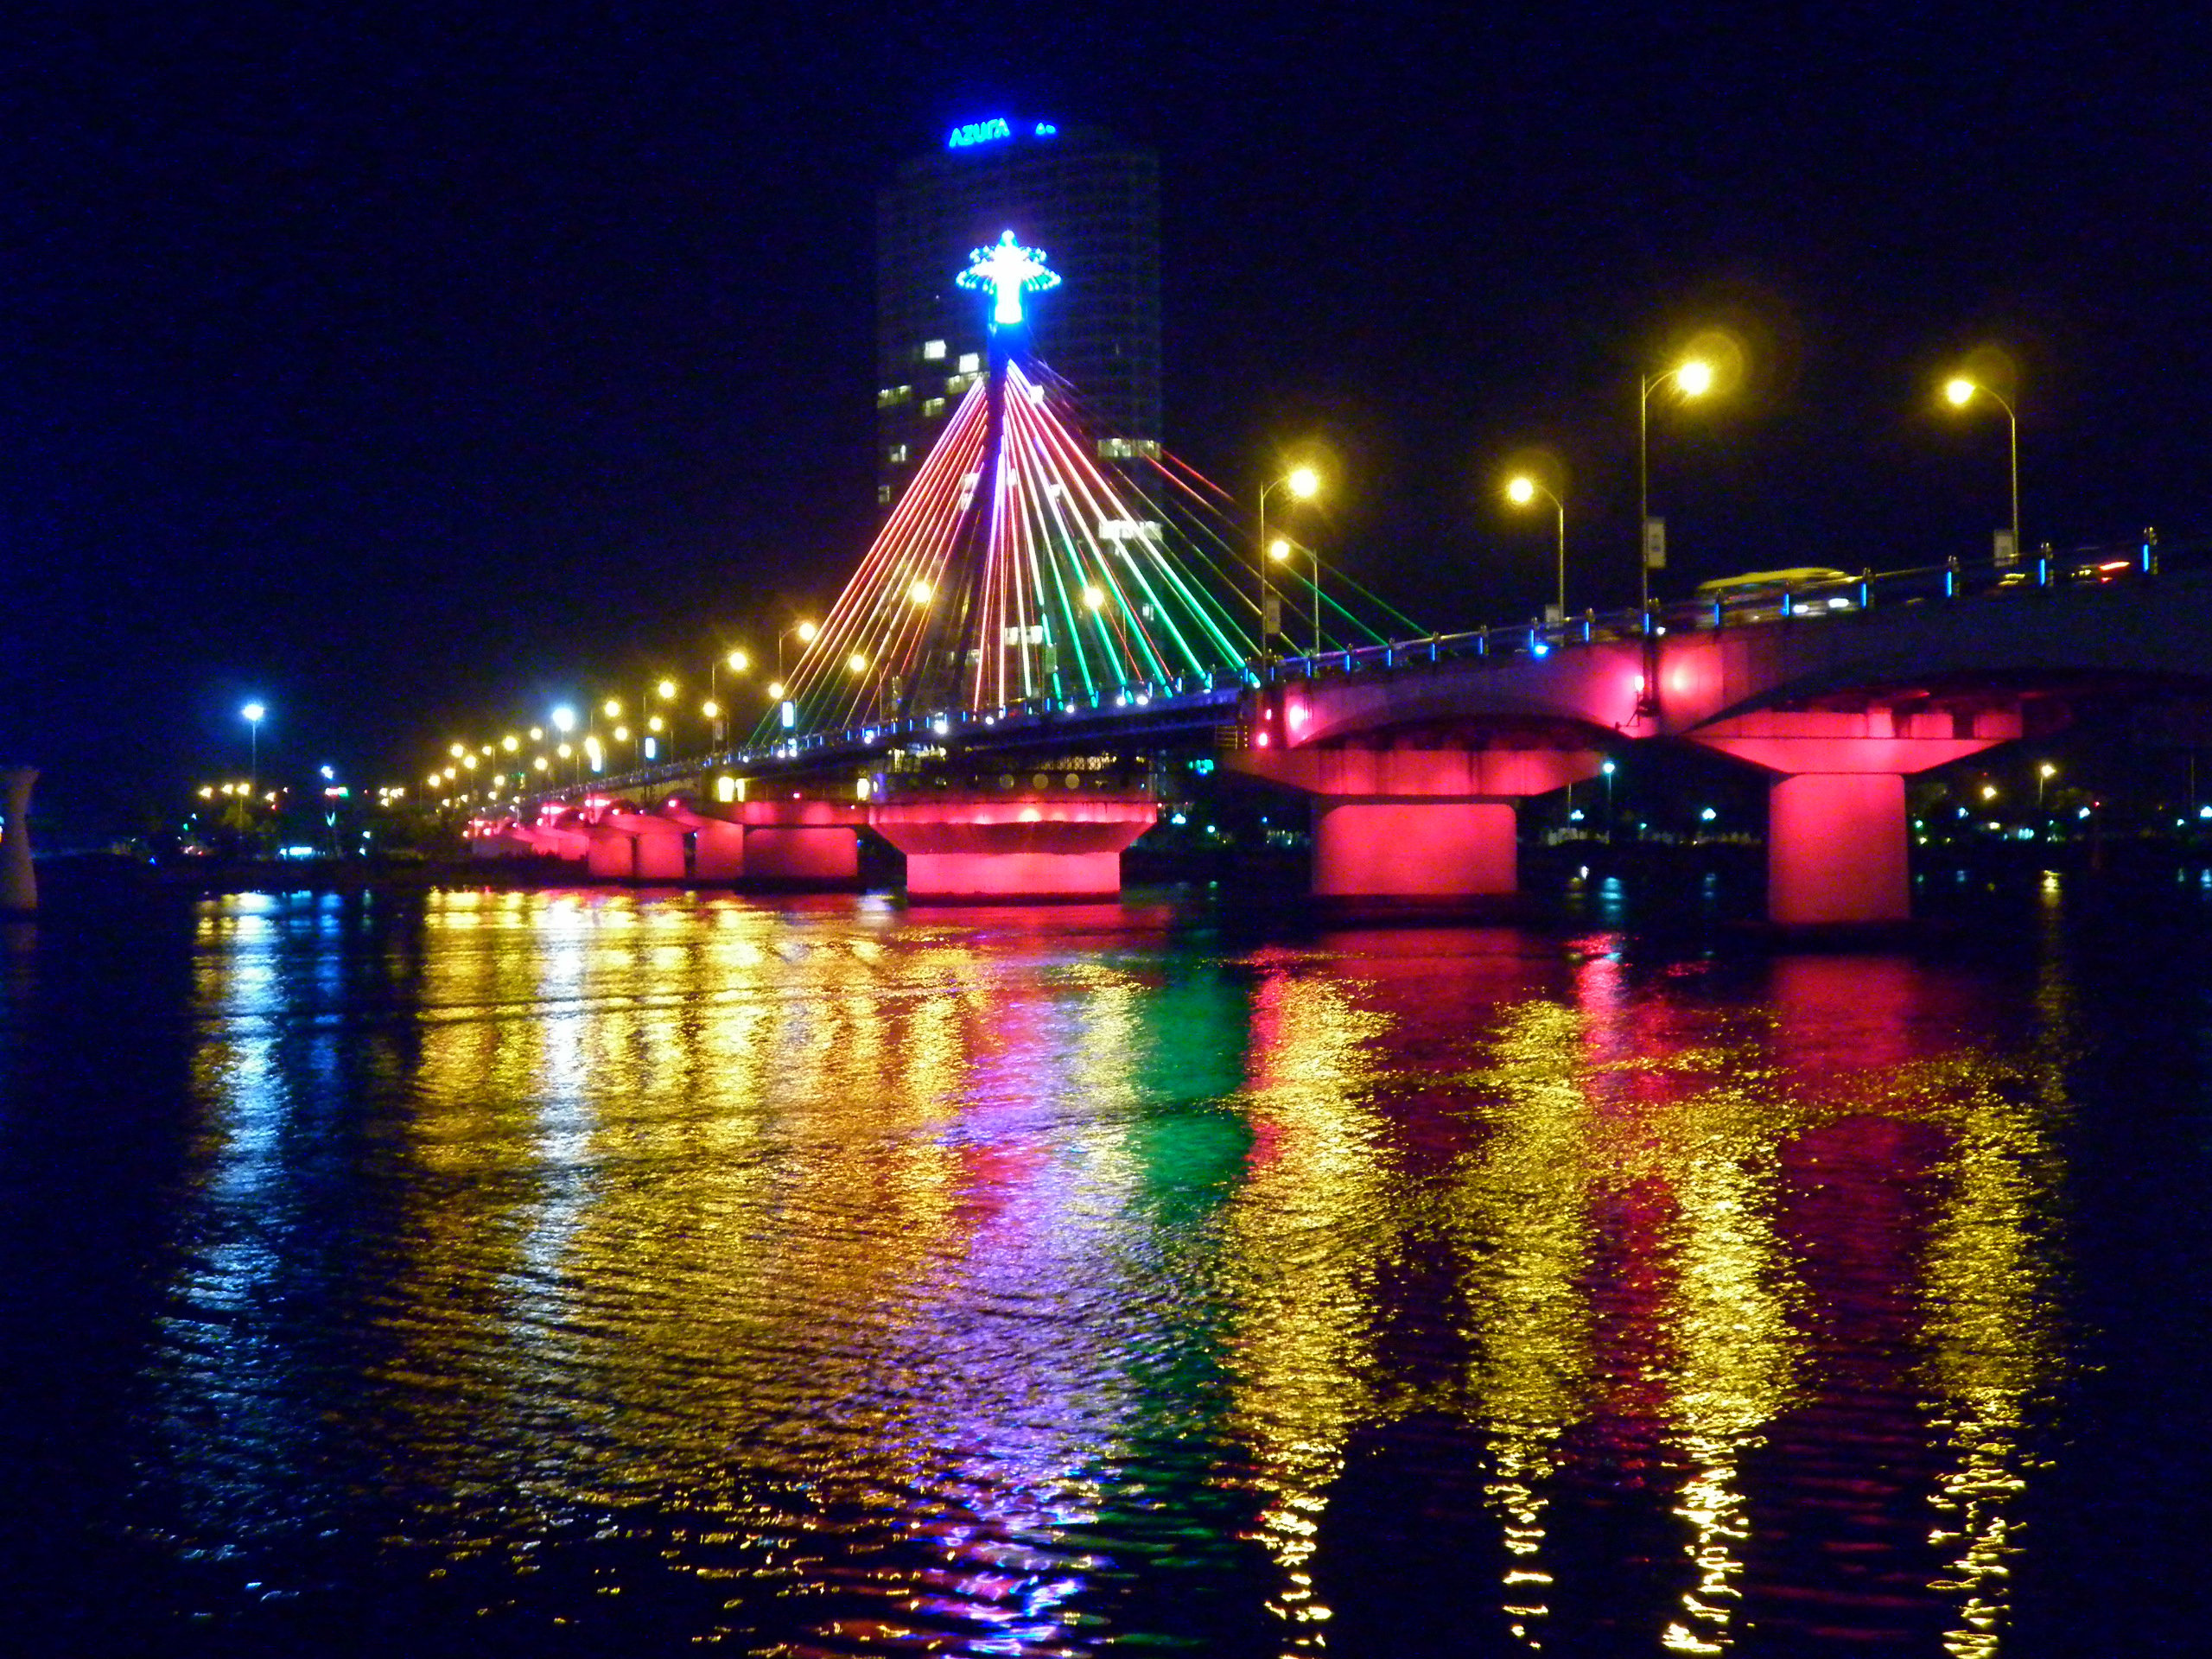 The Cau Rong bridge over the Han River in the city center of Da Nang on the central coast of Vietnam.